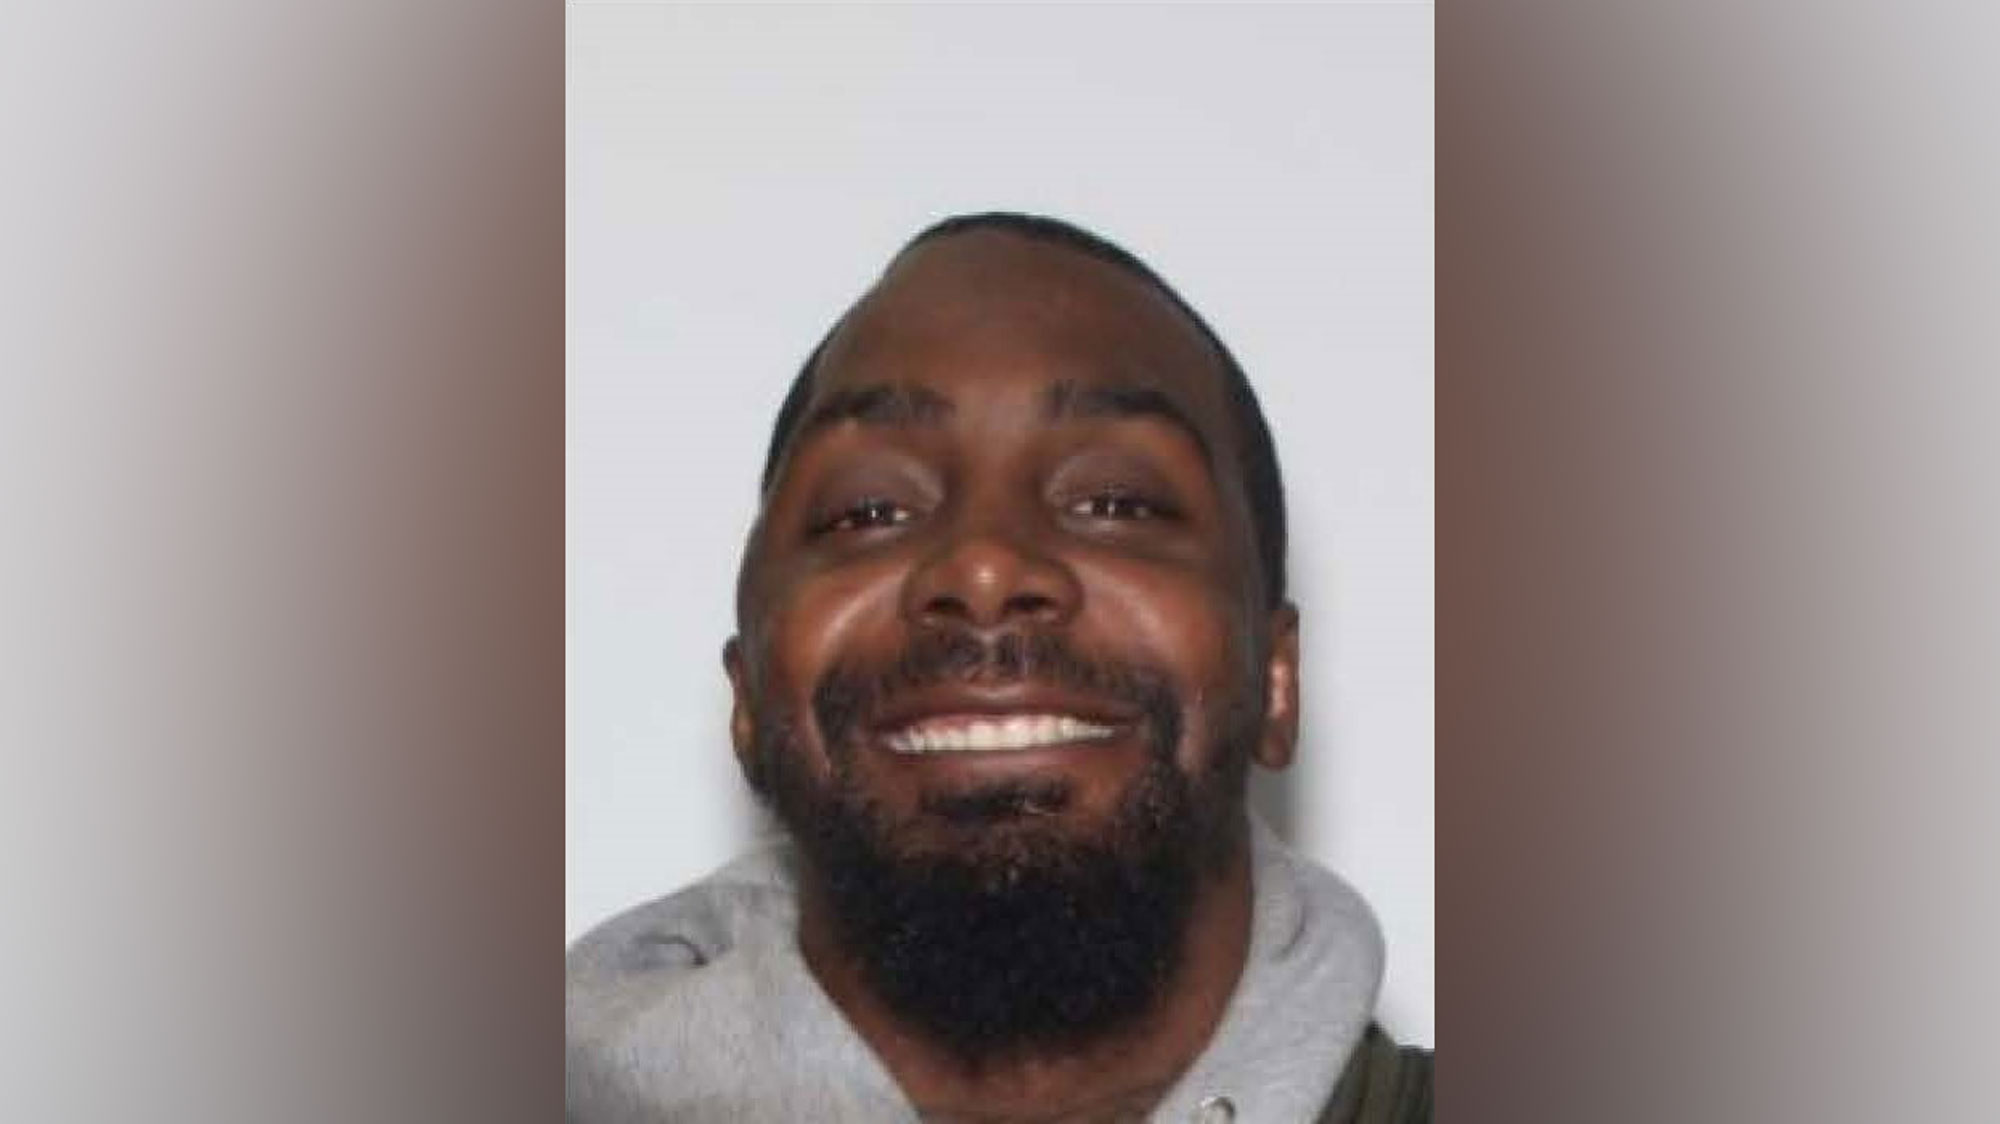 Man held in connection with grocery shooting in West Hempstead, New York, police say